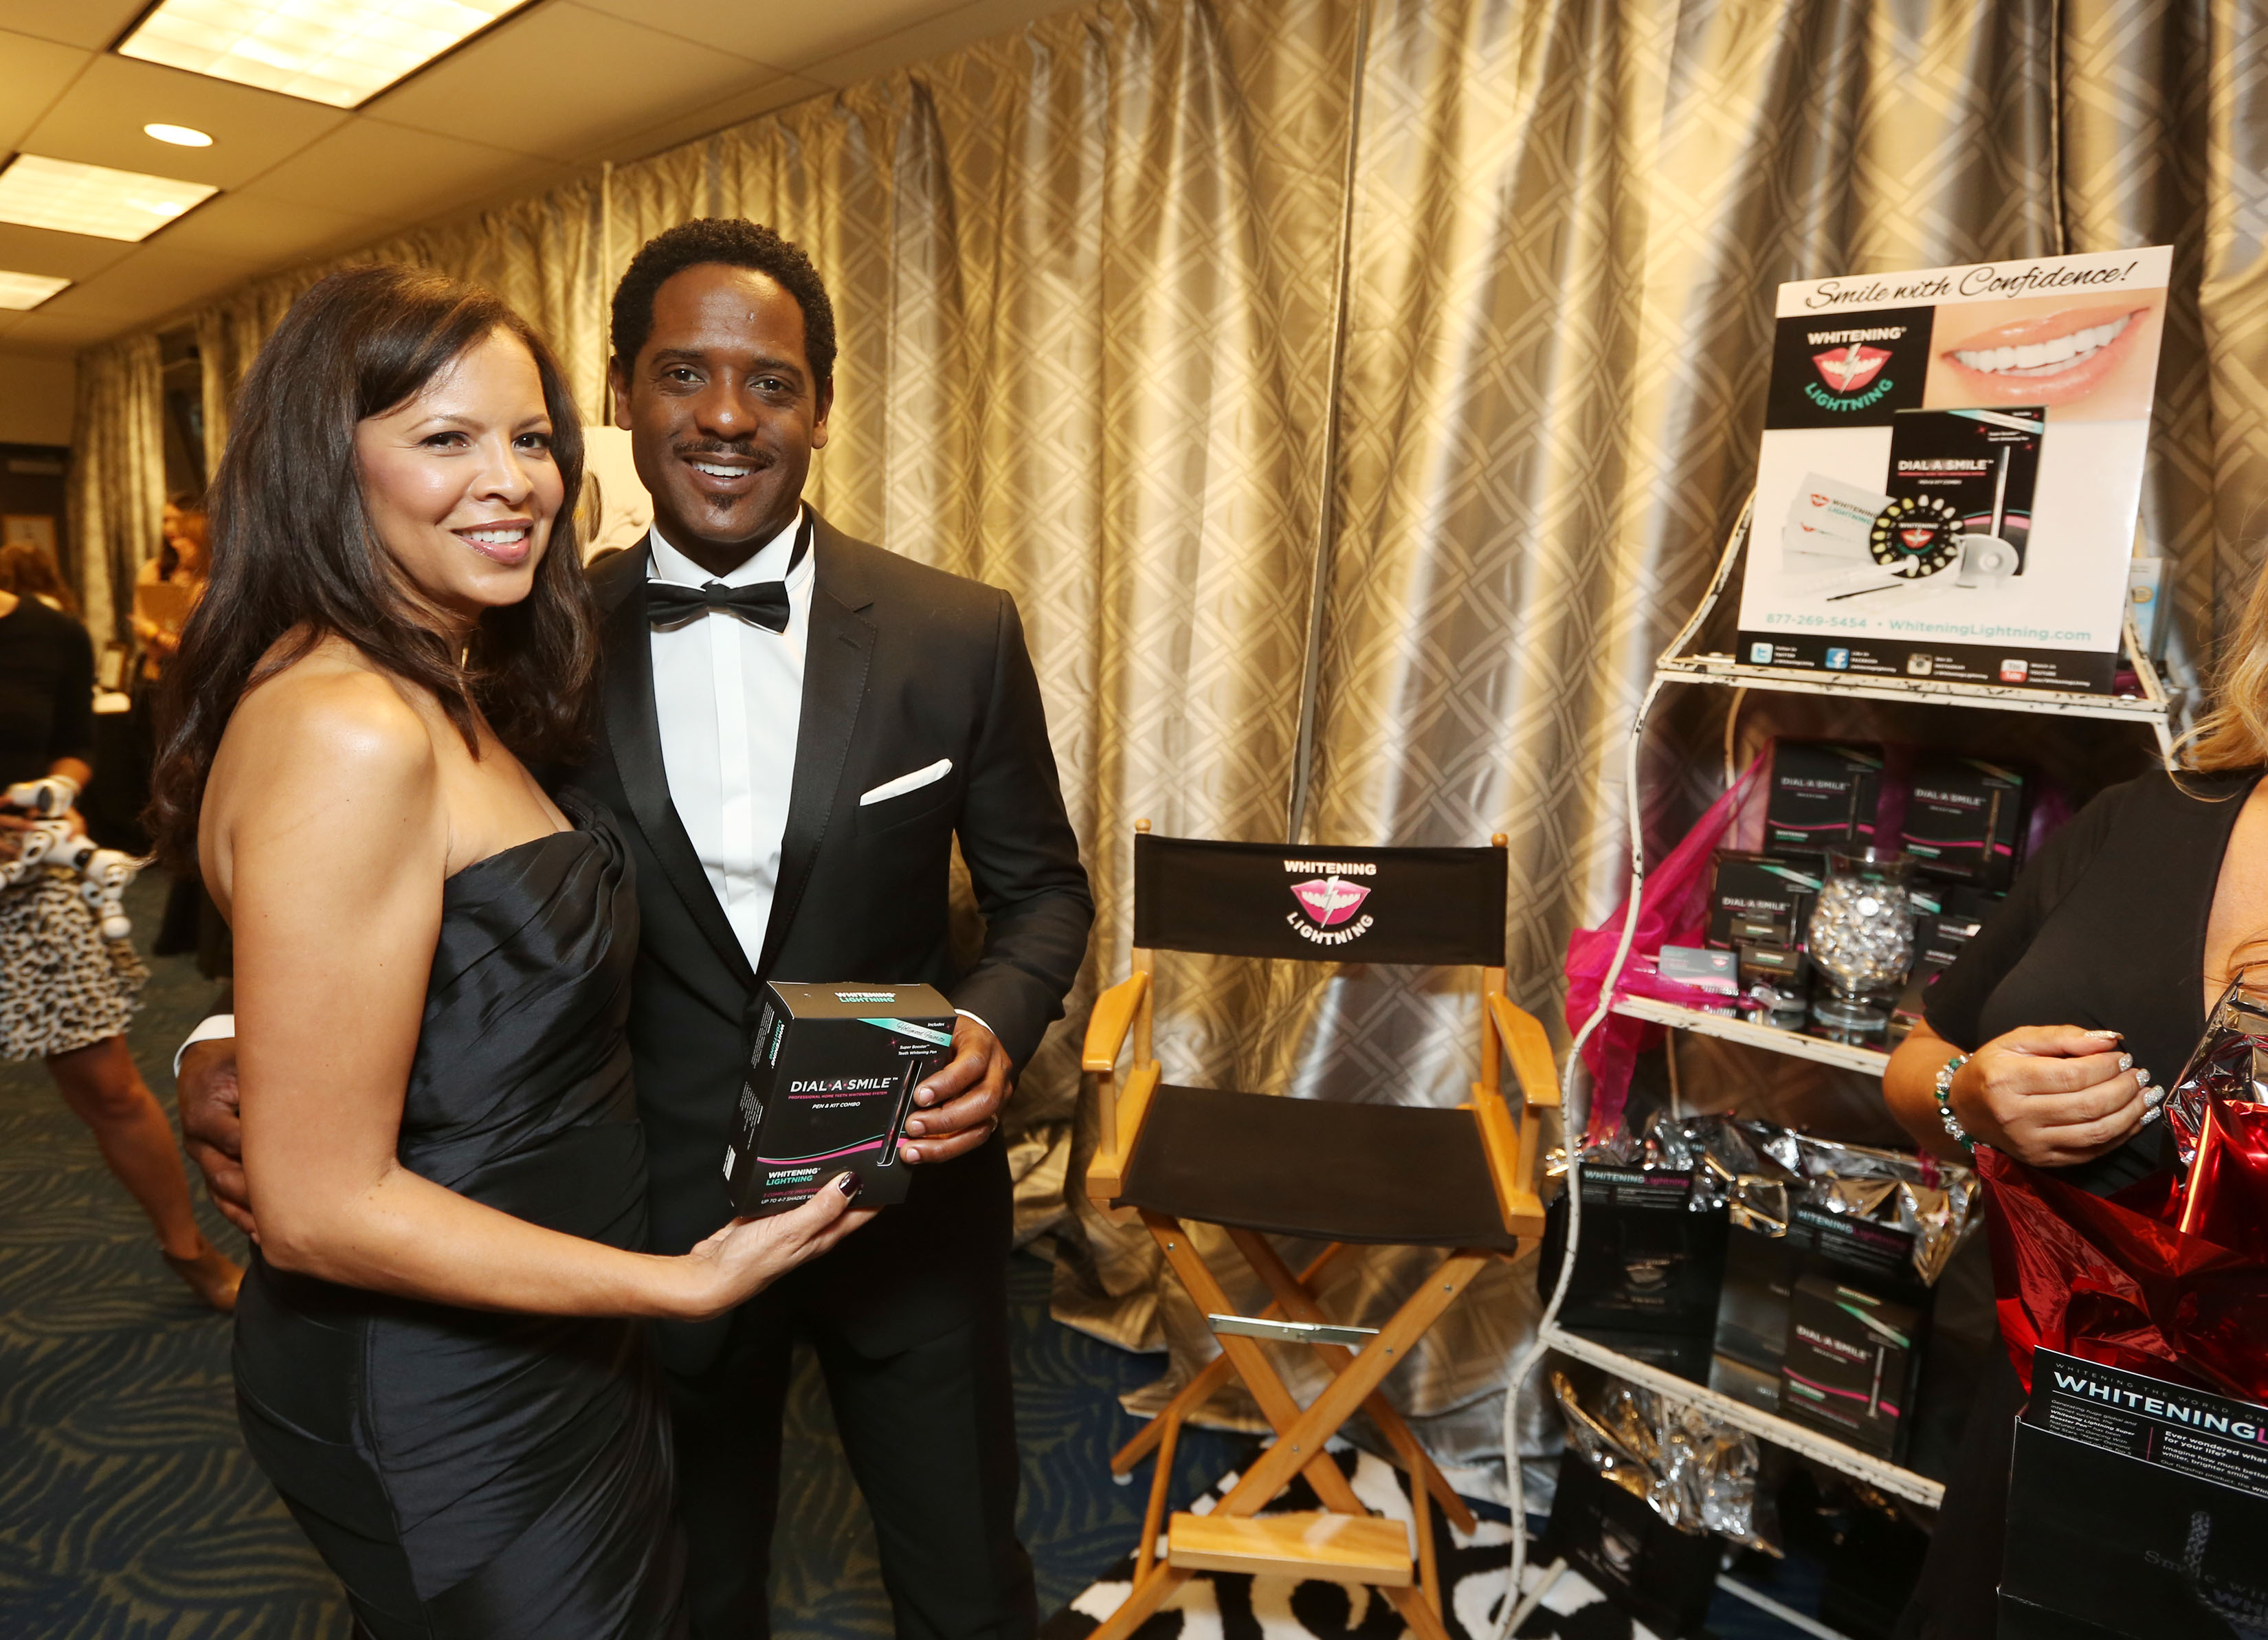 Blair Underwood and his wife Desiree DaCosta check out whitening lightning at the 65th Emmy Awards Giving Suite by Backstage Creations Sept. 21 in L.A.